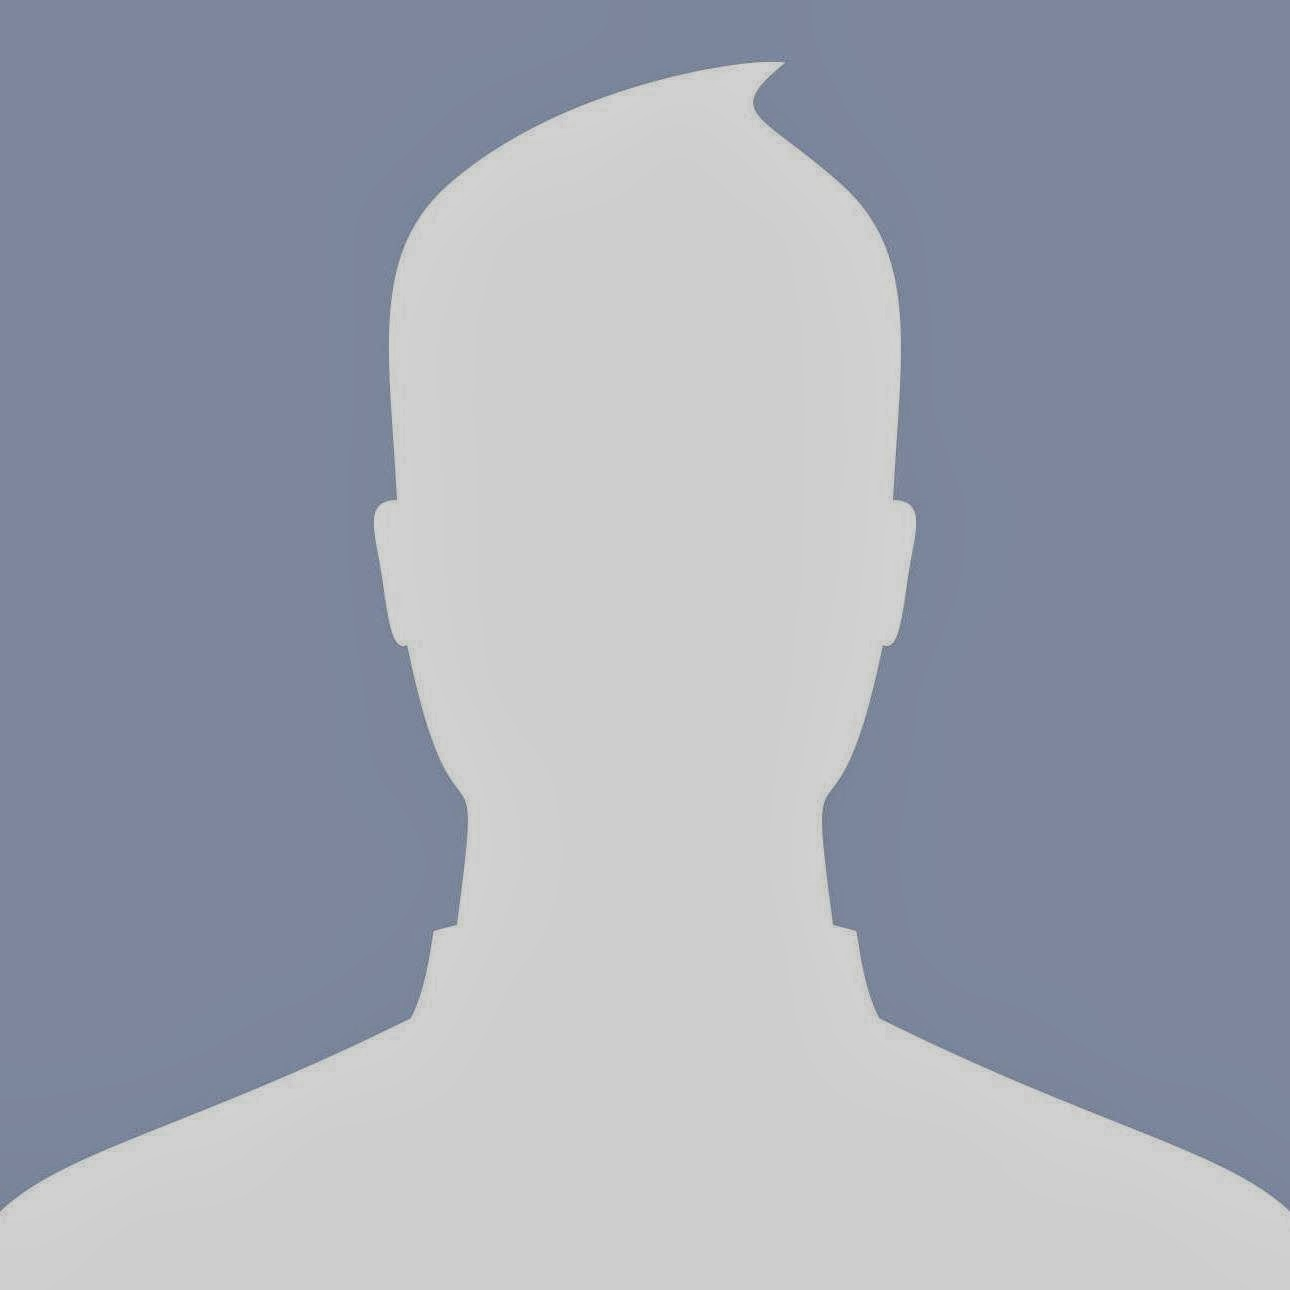 Faculty Male Default Profile Picture